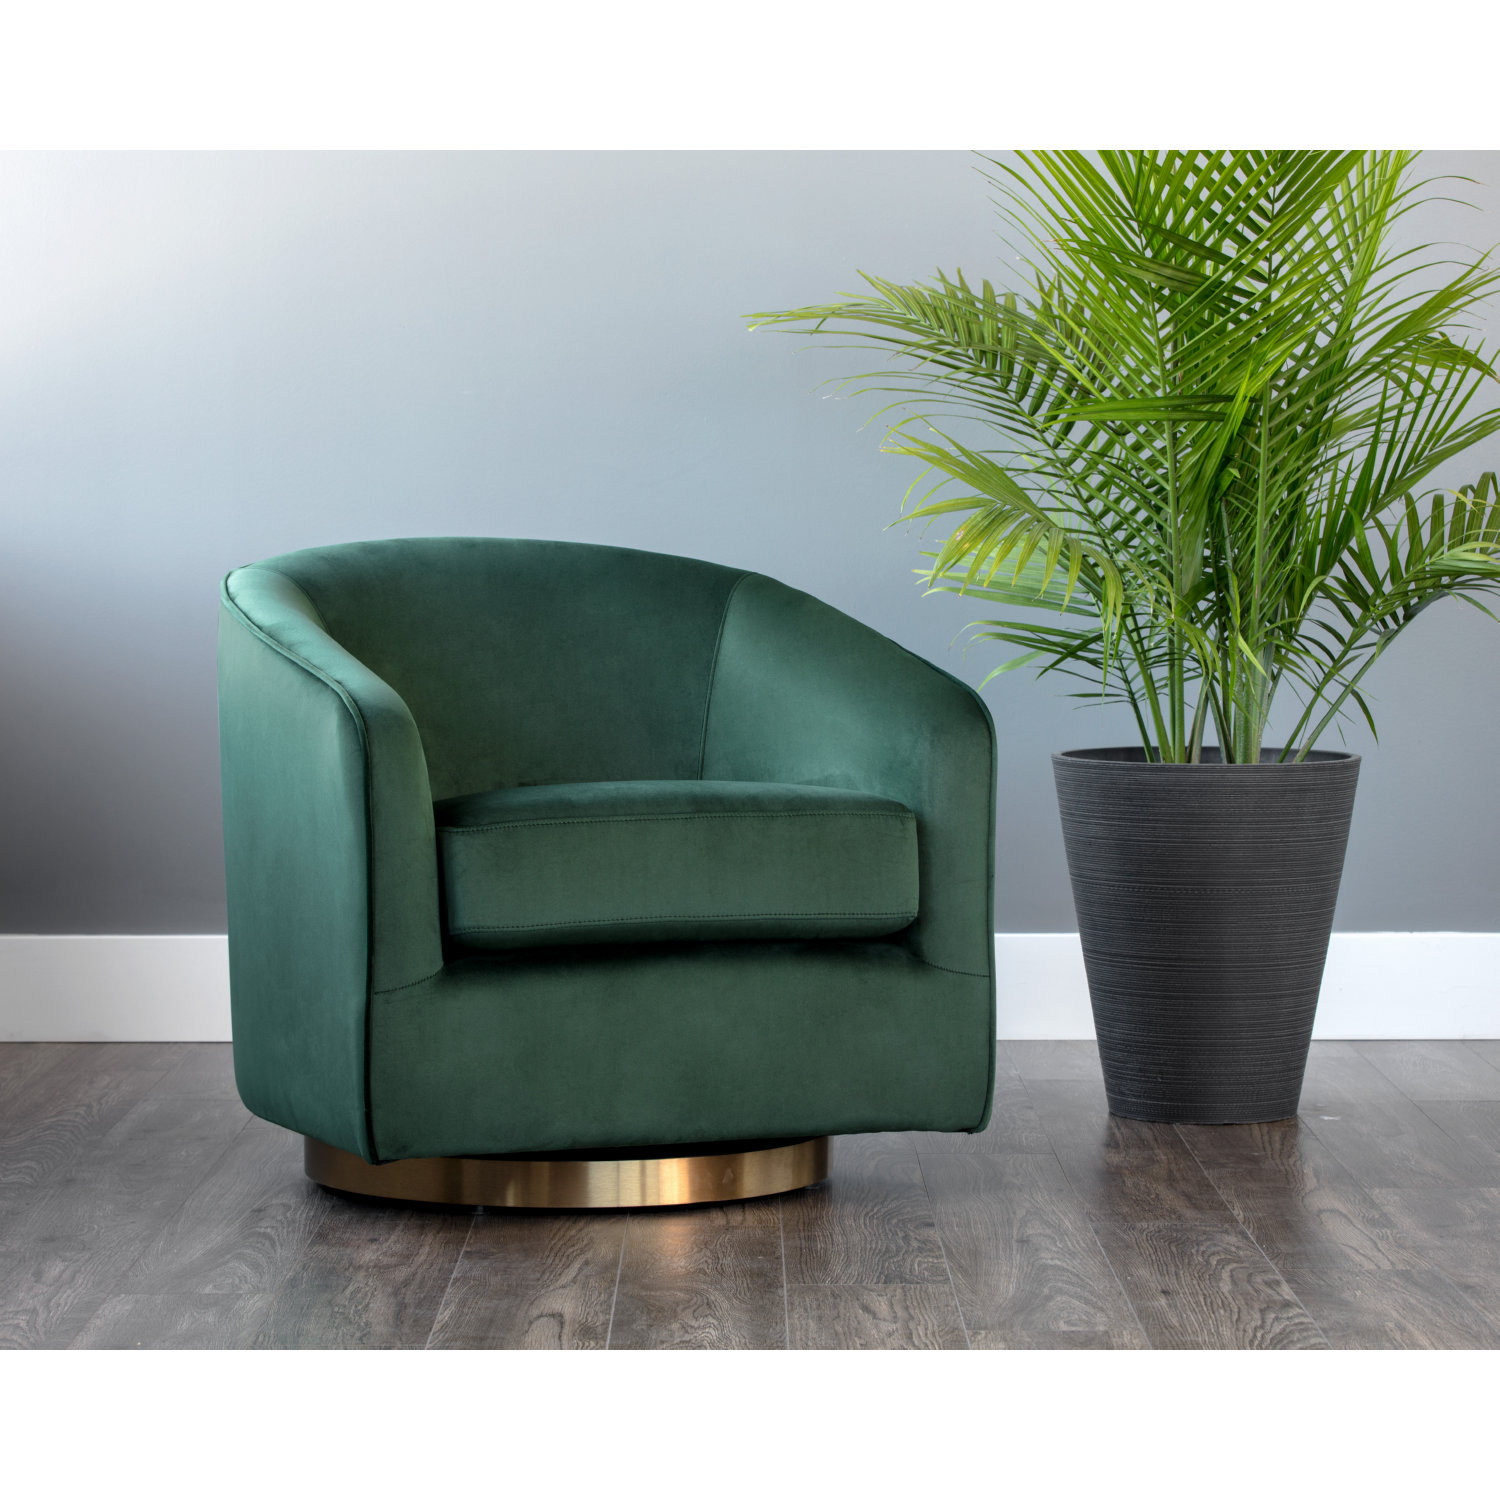 Fantastic Hazel Swivel Accent Chair In Deep Green Sky Fabric On Gold Stainless By Sunpan Caraccident5 Cool Chair Designs And Ideas Caraccident5Info